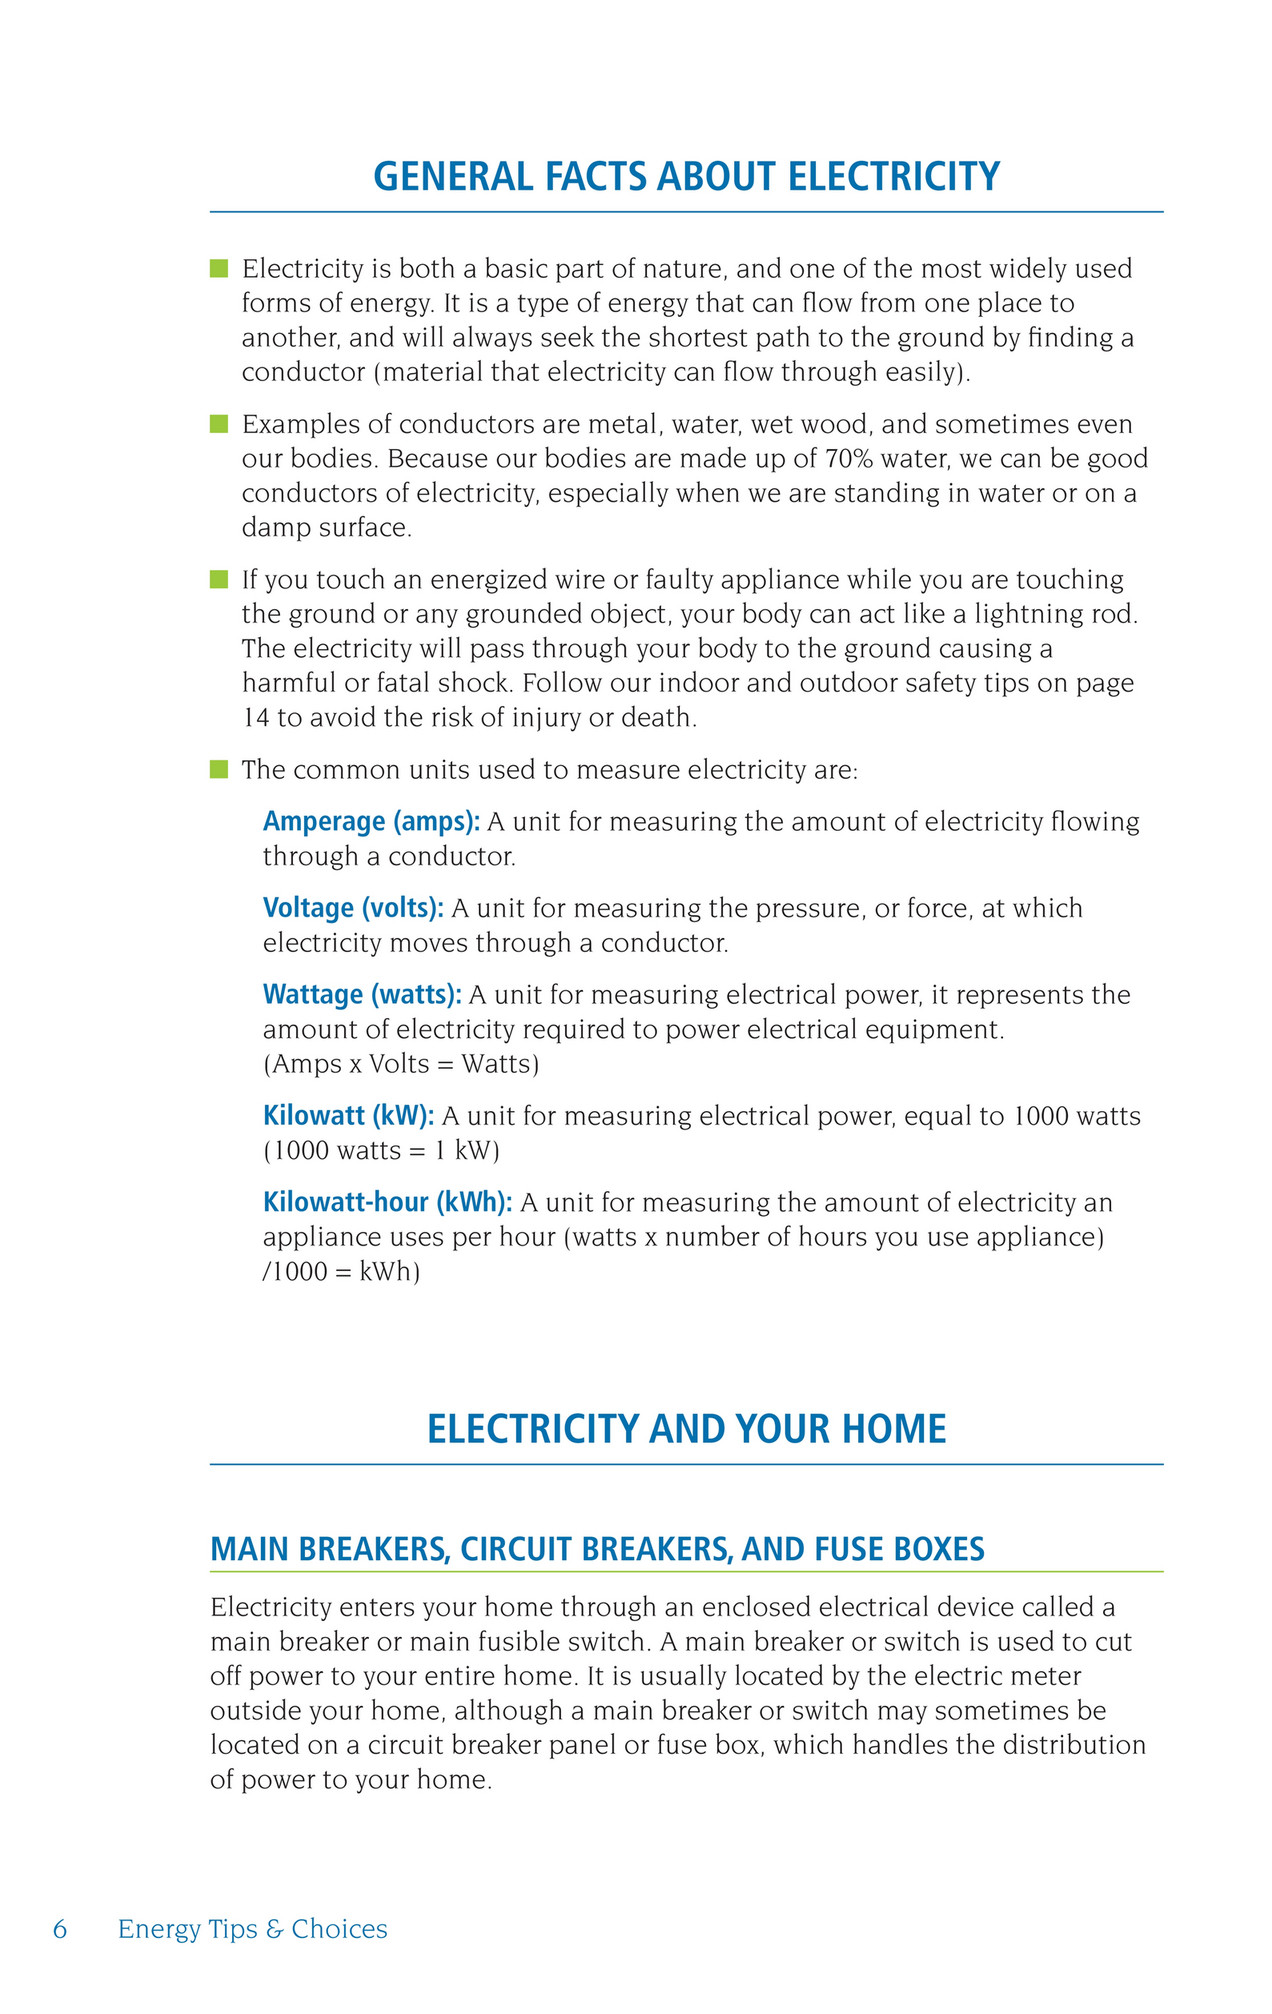 Maui Electric Energy Tips Choices Page 6 7 General Fuse Boxes Circuit Breakers And Are Safety Devices Built Into Your Electrical System Which Limit The Amount Of Current A Will Carry